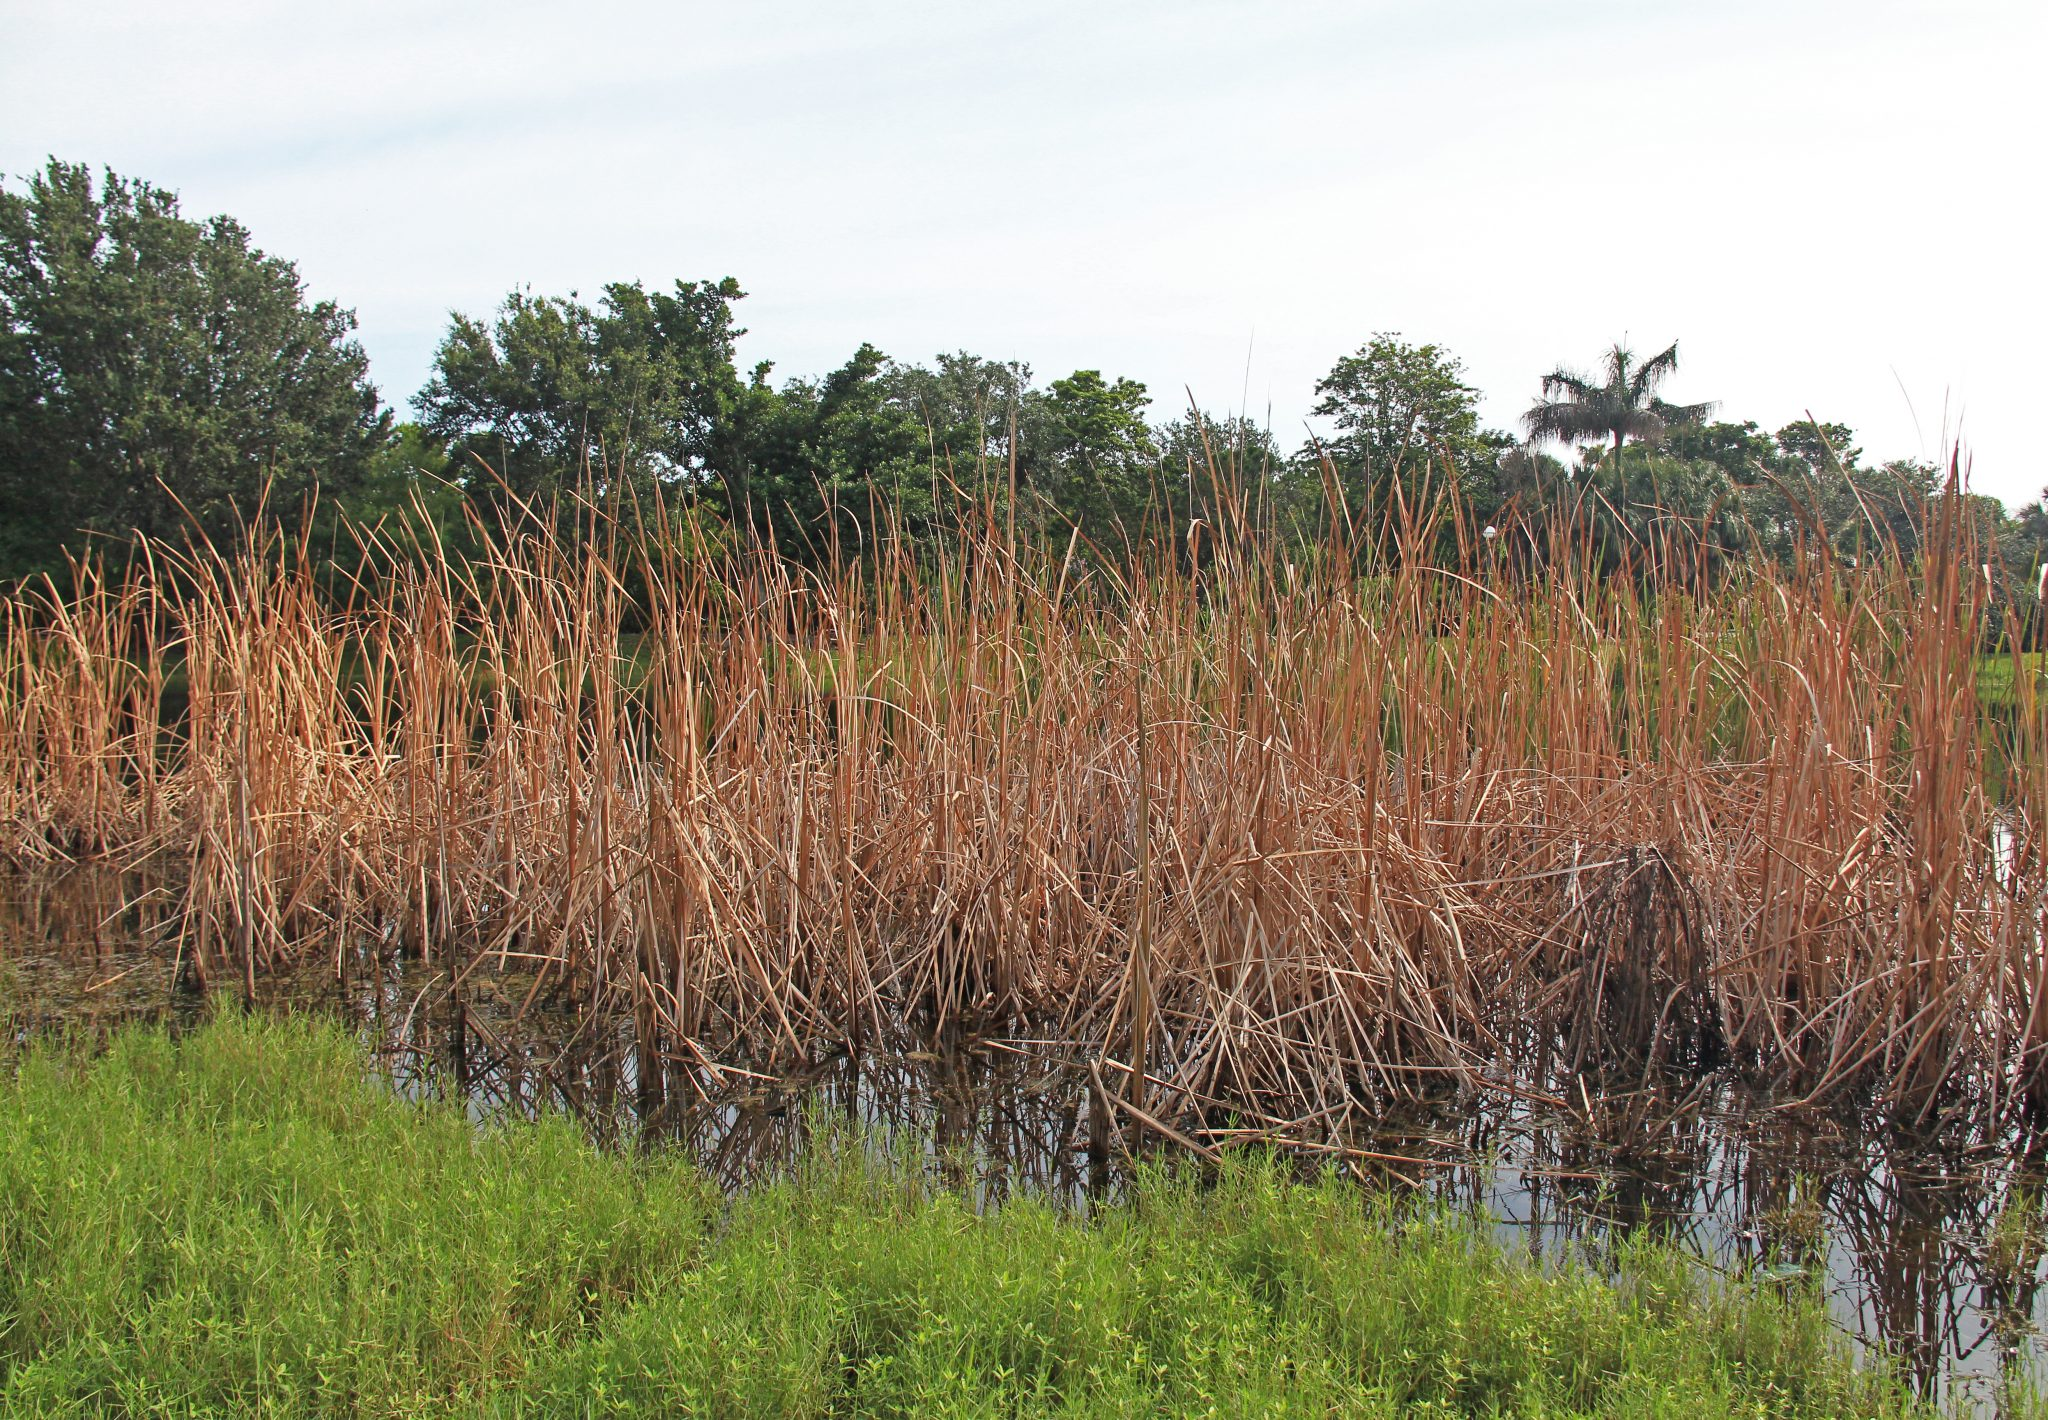 Cattails are aquatic plants. There are many species and they grow in temperate and tropical regions. They grow fast and often take up space in the water crowding out other plants.